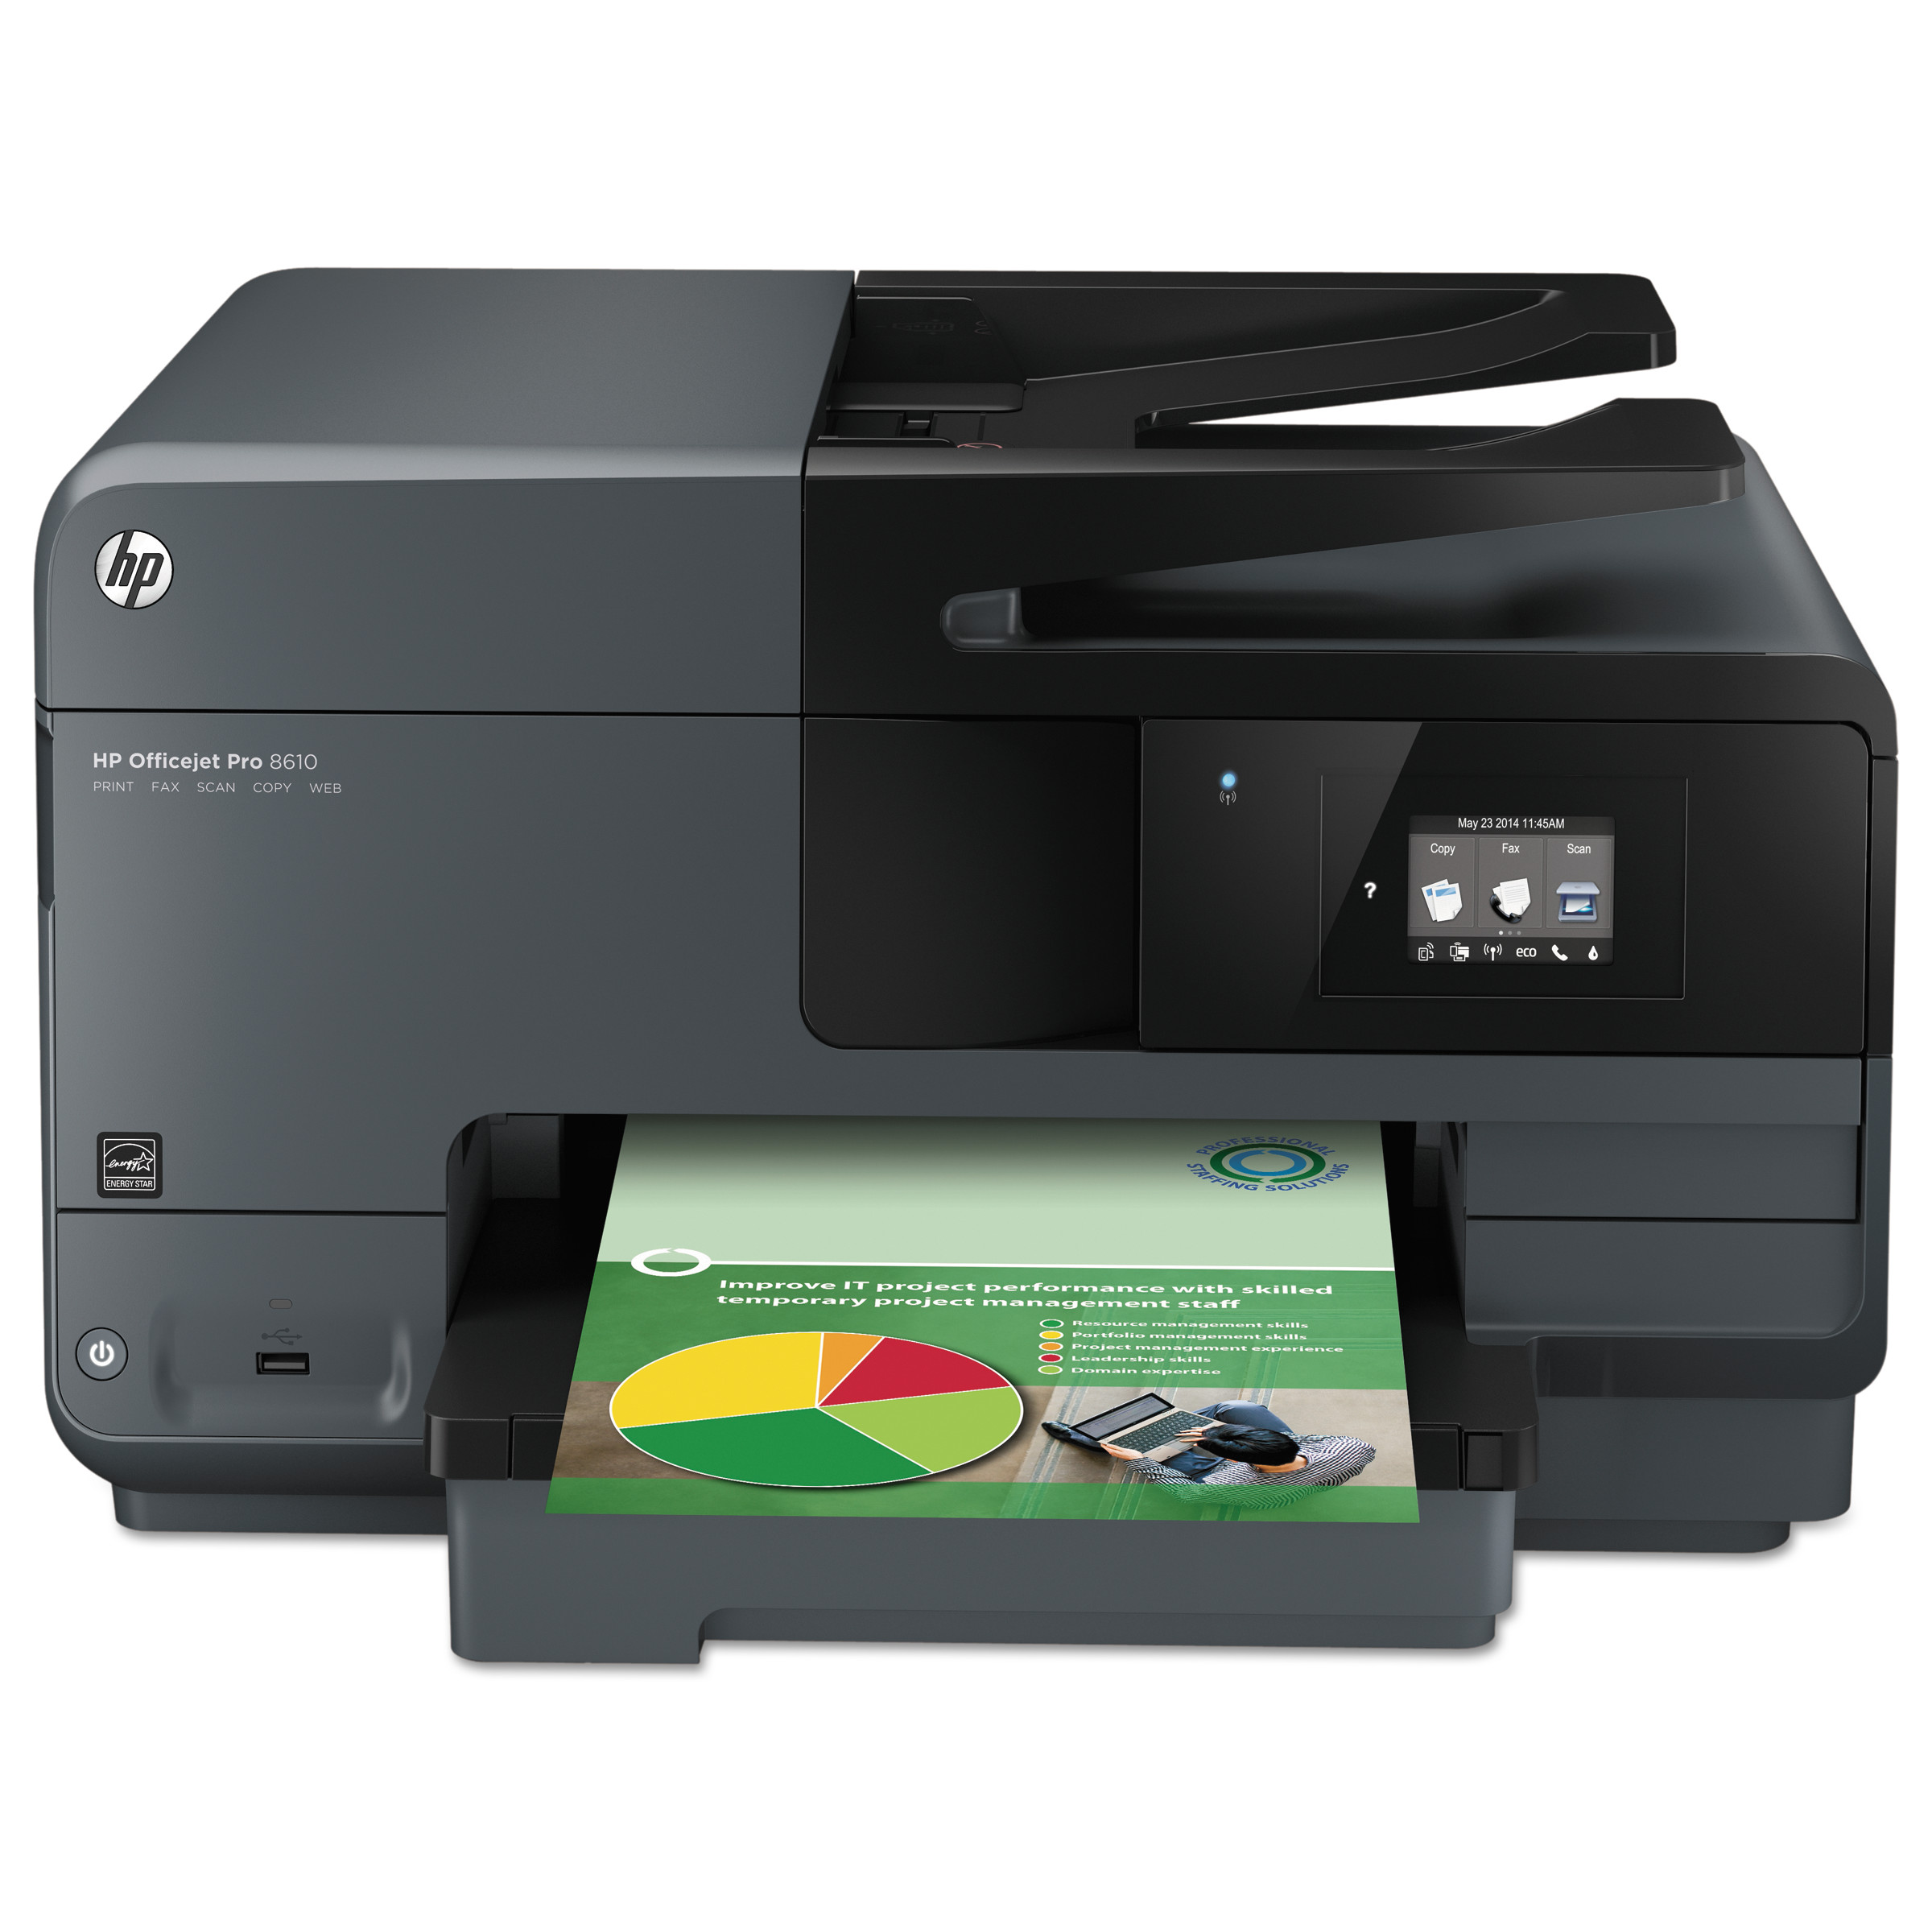 Hp Officejet Pro 8610 E All In One Wireless Inkjet Printer Copyfax